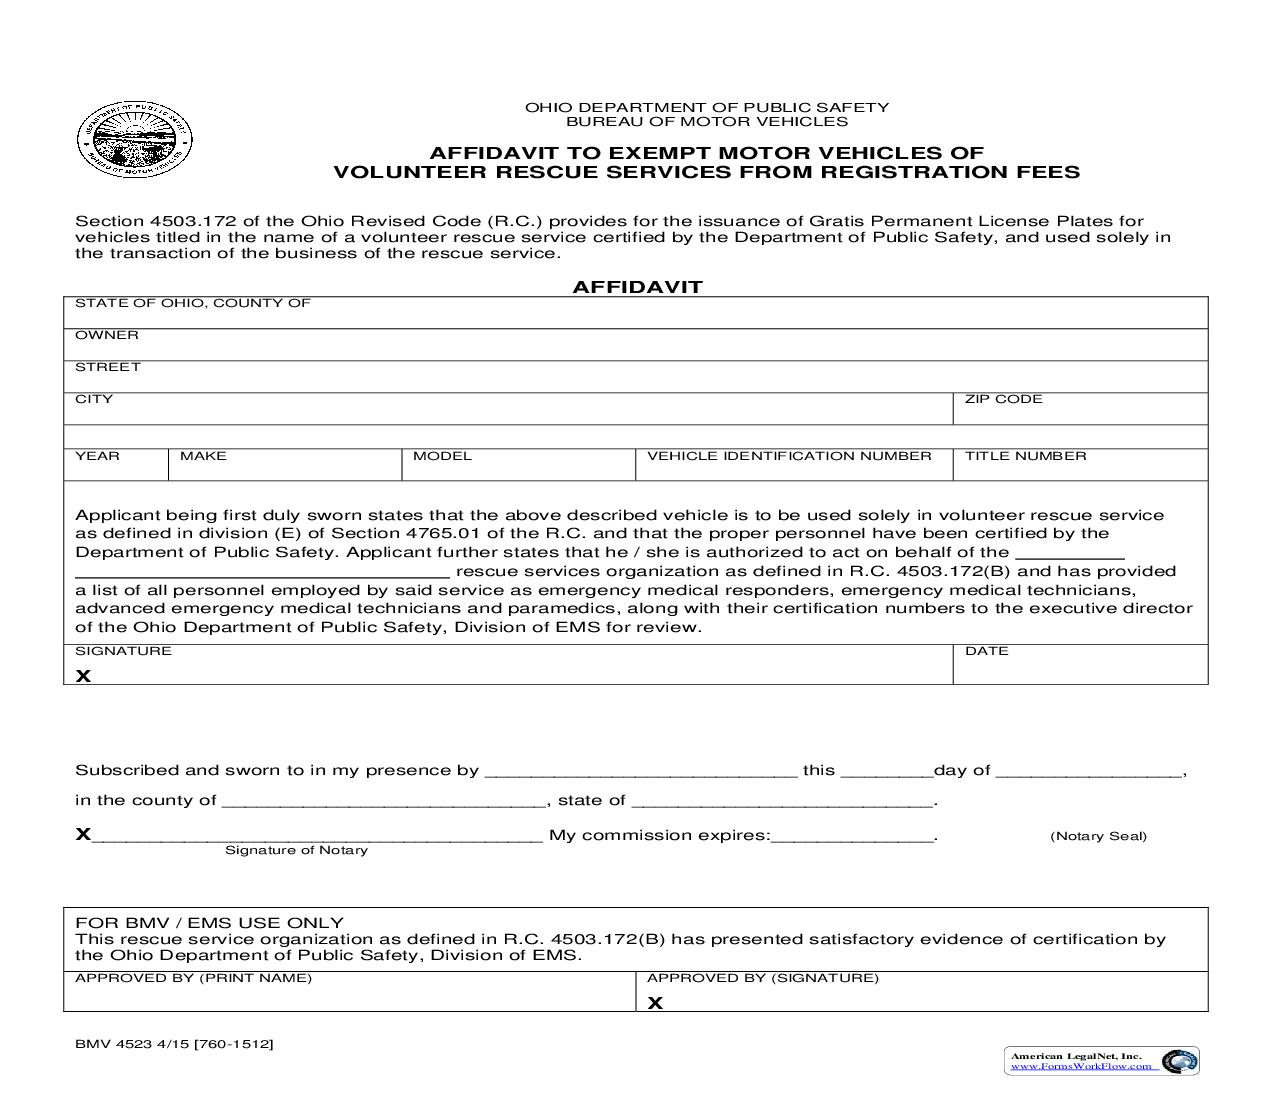 Affidavit To Exempt Motor Vehicles Of Voulunteer Rescue Services From Registration Fees {BMV 4523} | Pdf Fpdf Doc Docx | Ohio